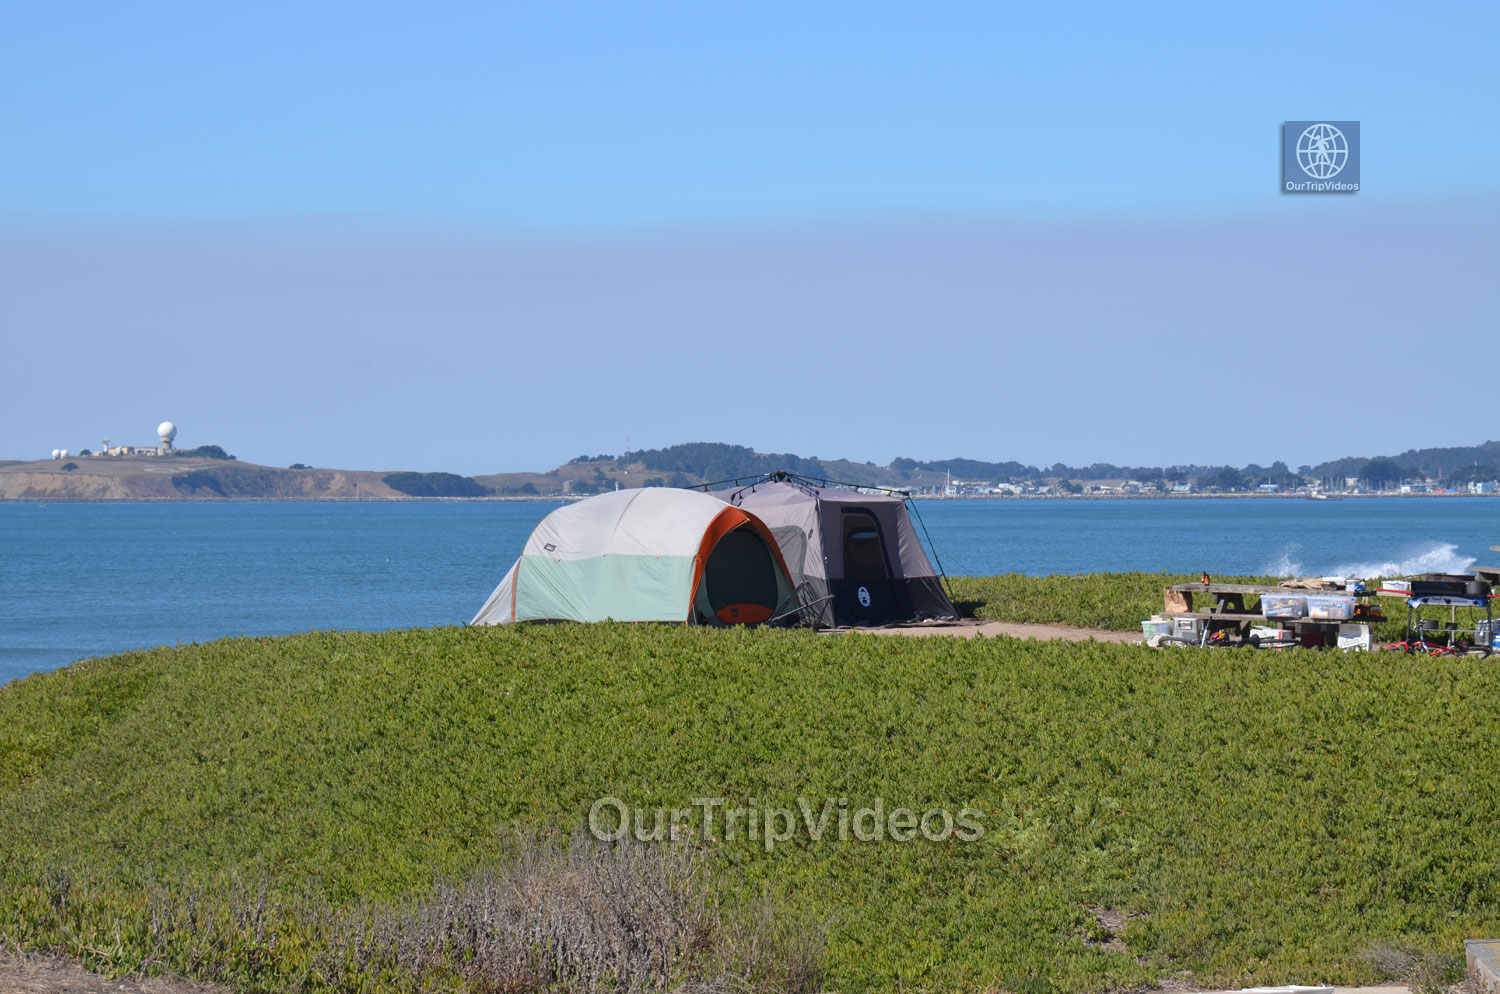 State Beach(Francis Beach), Half Moon Bay, CA, USA - Picture 1 of 25